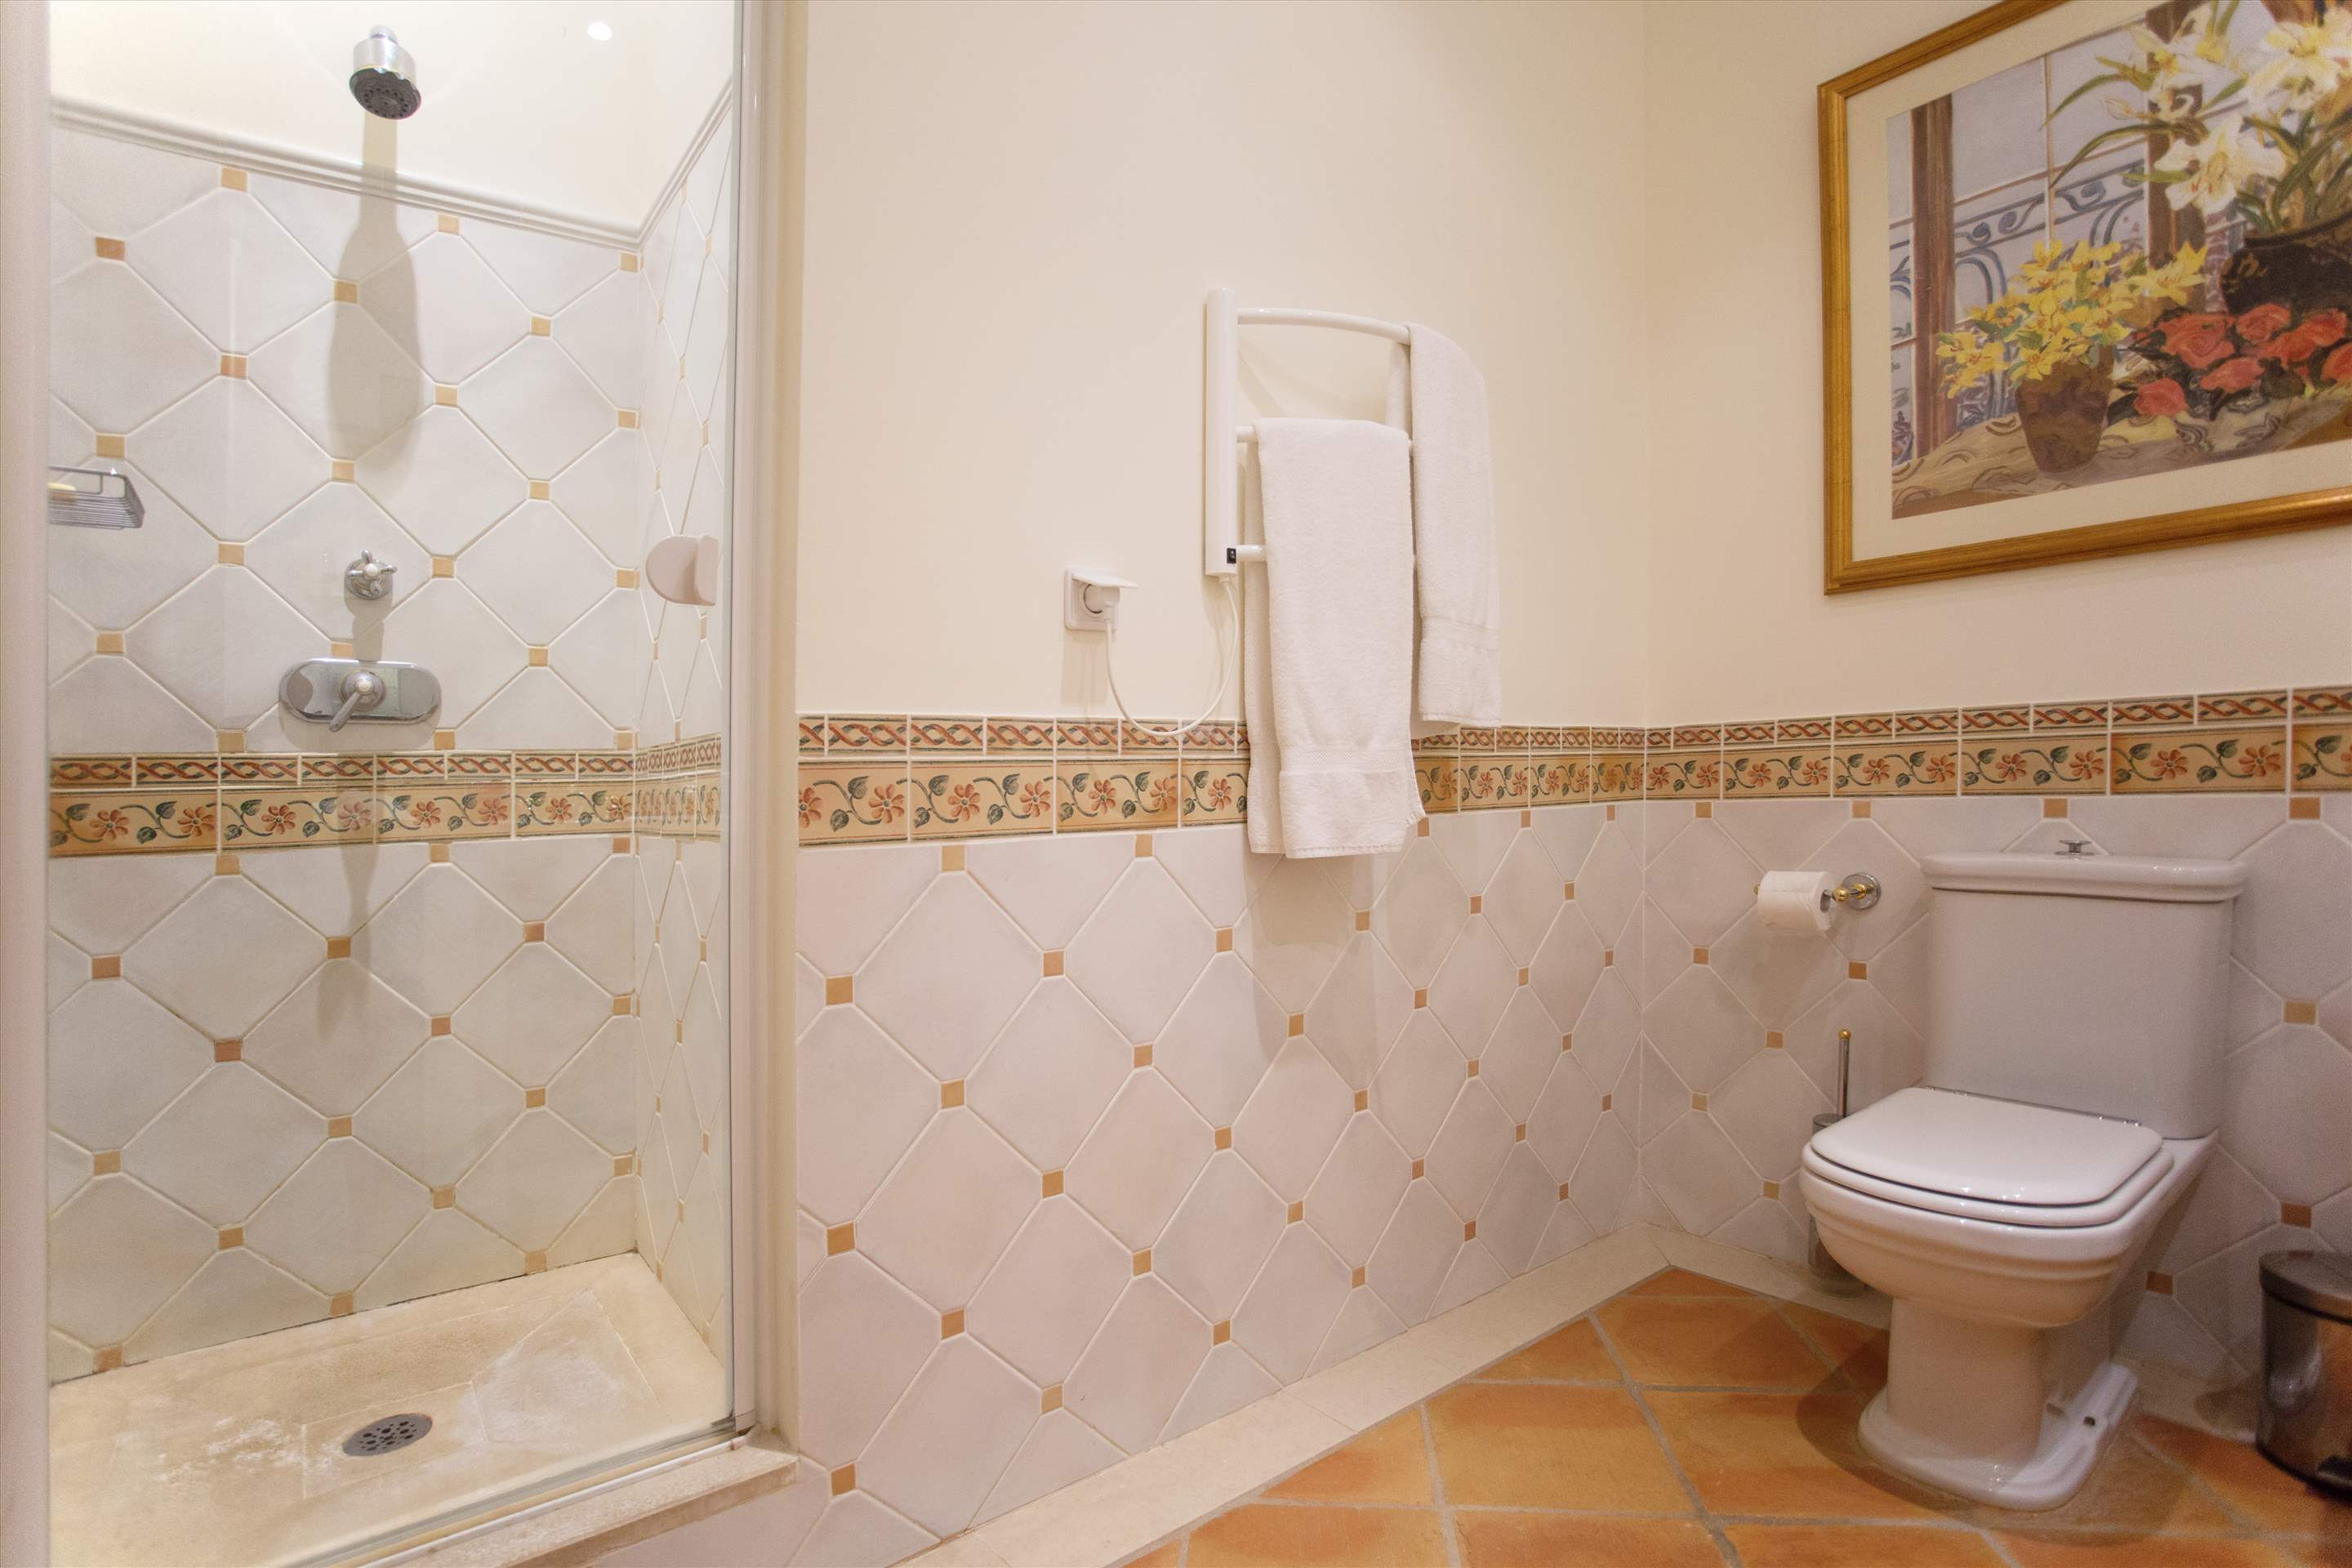 Villa Palmeiras Altas, 5 bedroom villa in Quinta do Lago, Algarve Photo #25